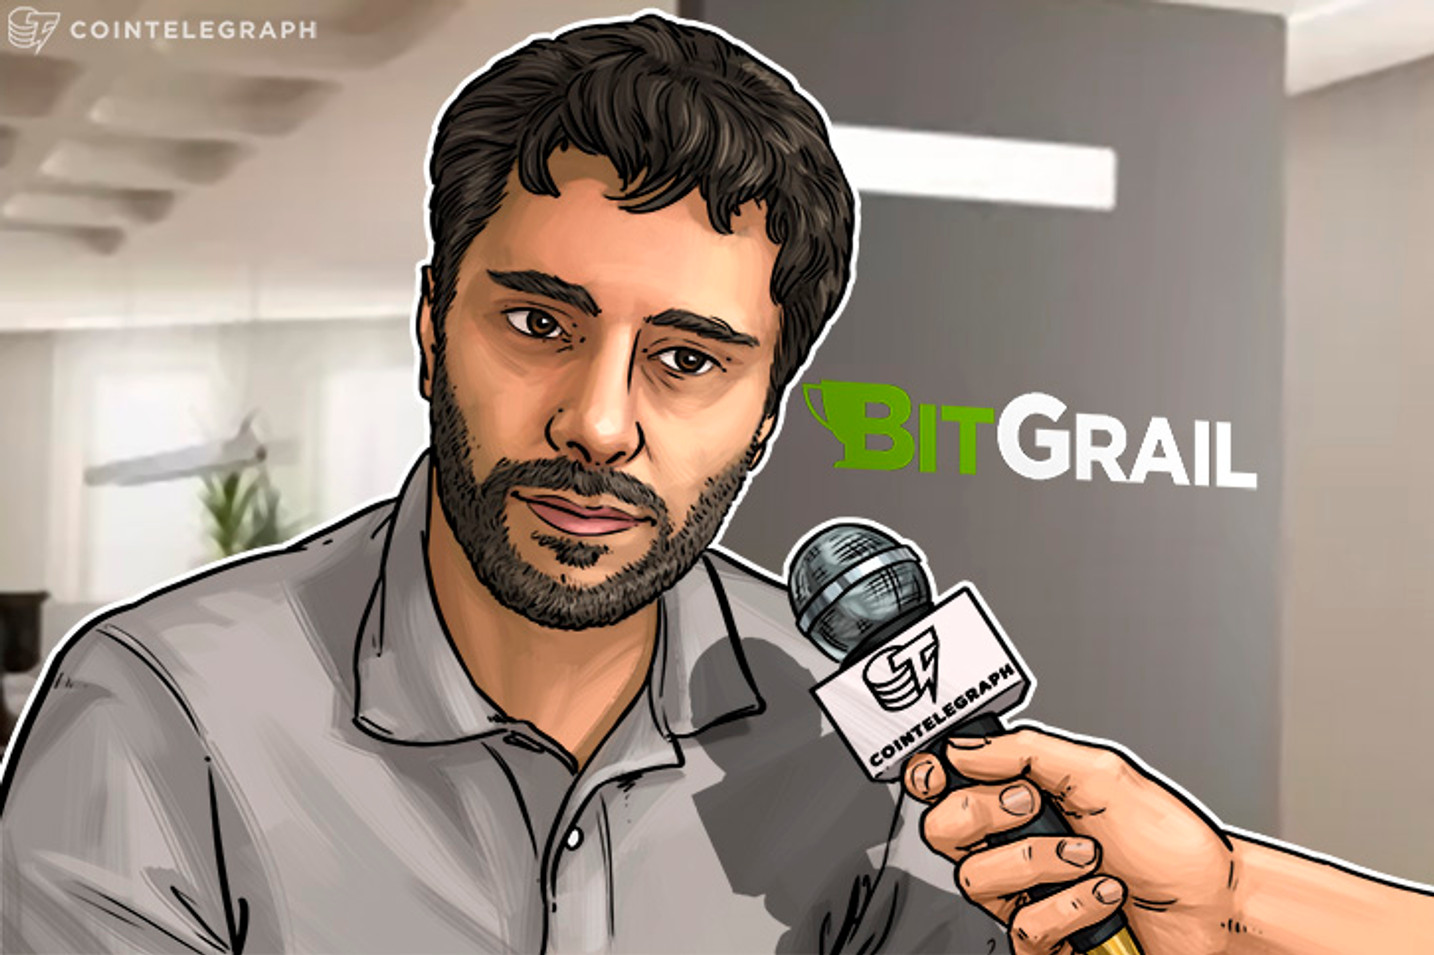 """It's Impossible to Refund the Stolen Amount"": Interview with BitGrail's Francesco Firano"